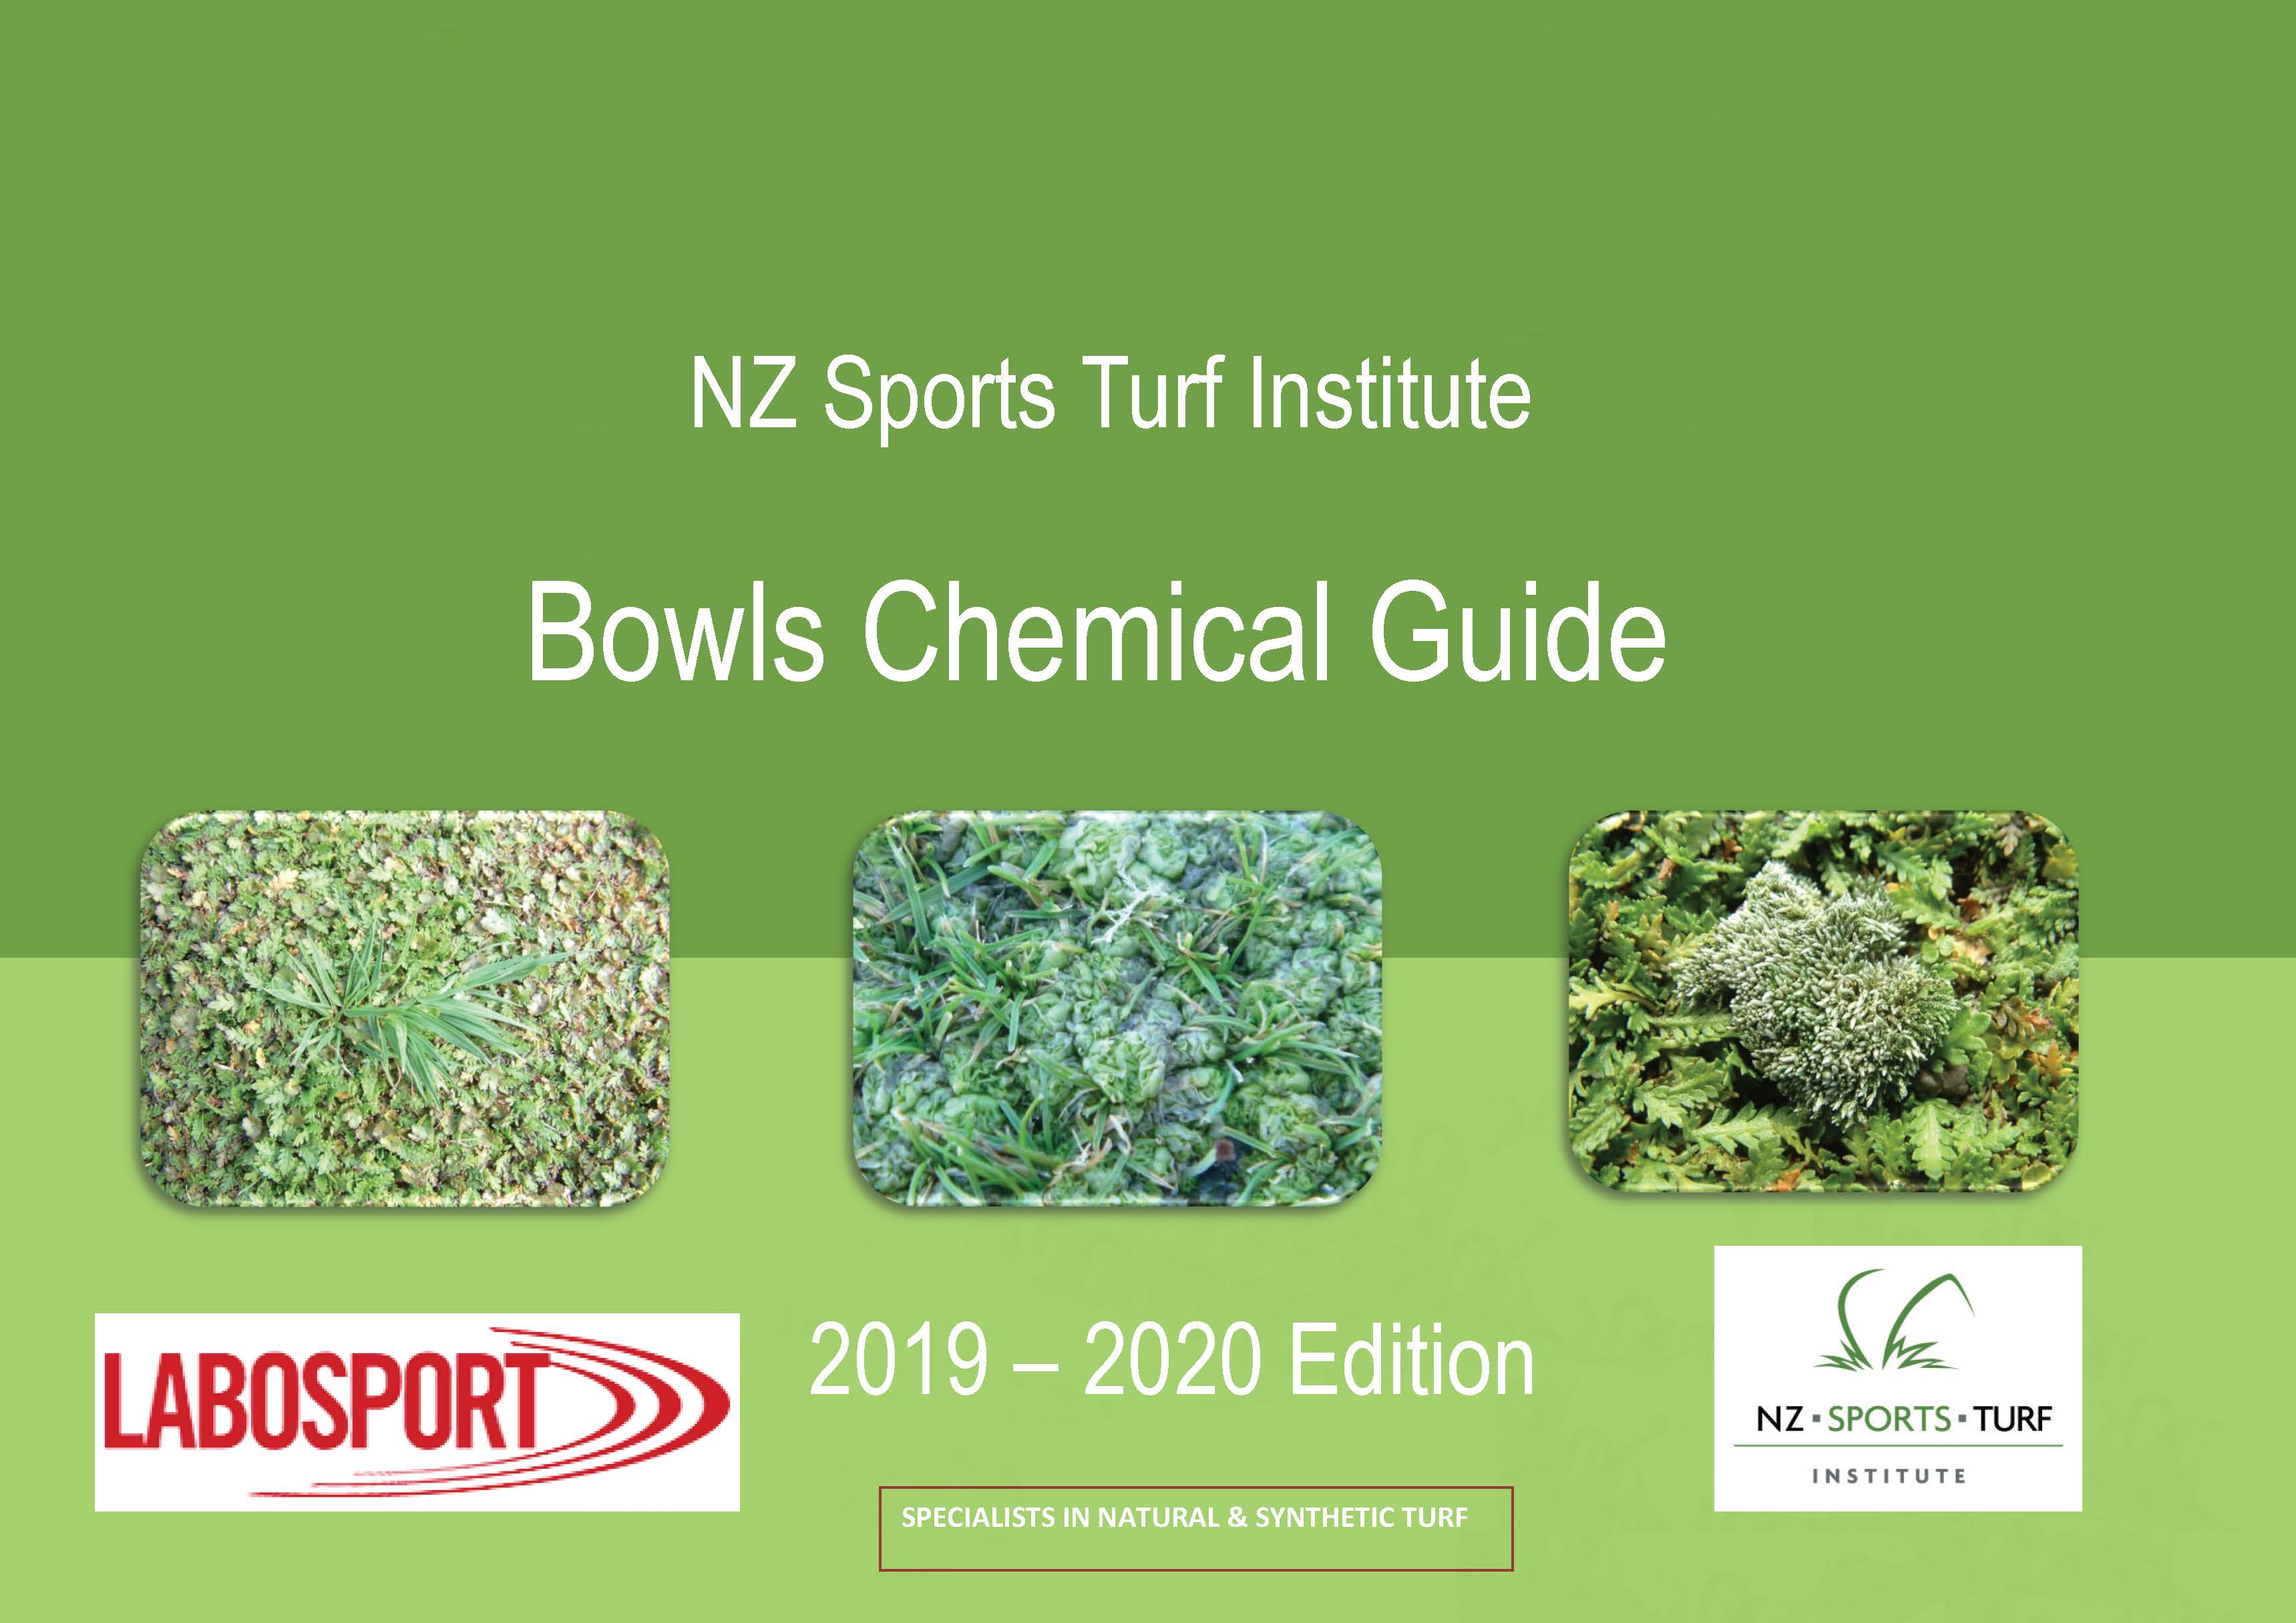 NZSTI Bowls Chemical Guide